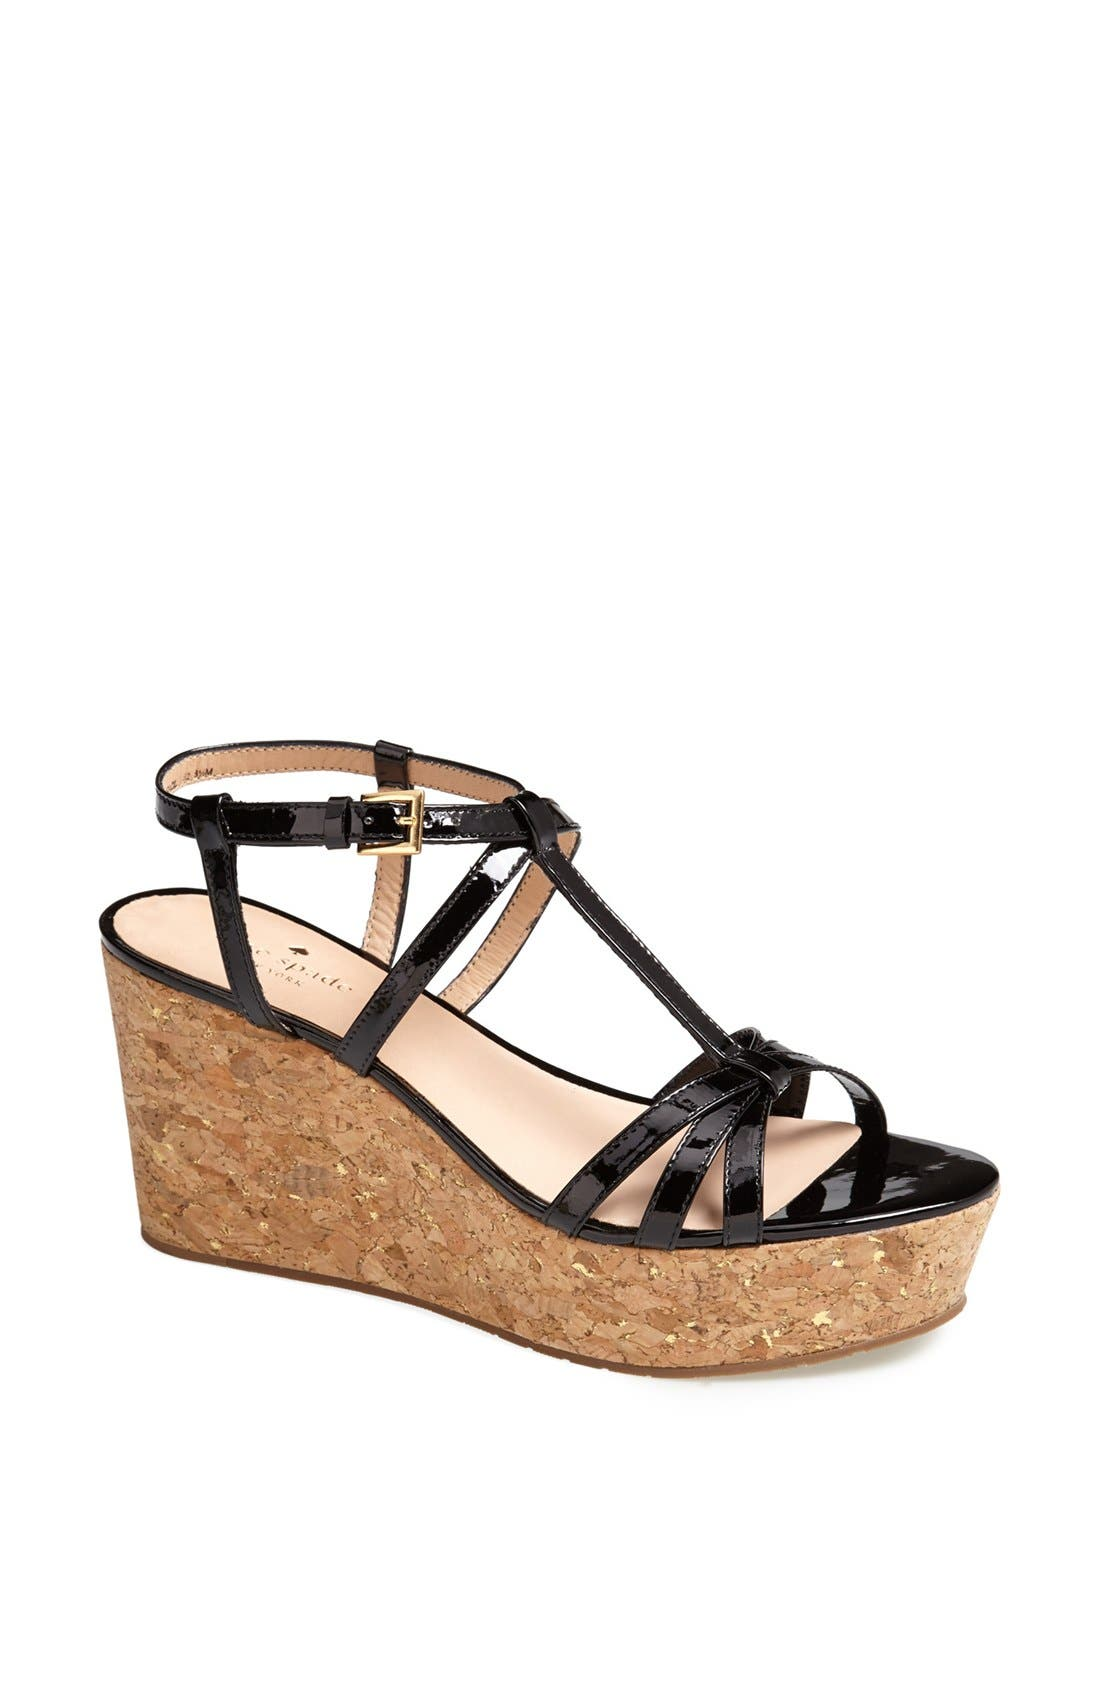 Alternate Image 1 Selected - kate spade new york 'tropez' wedge platform sandal